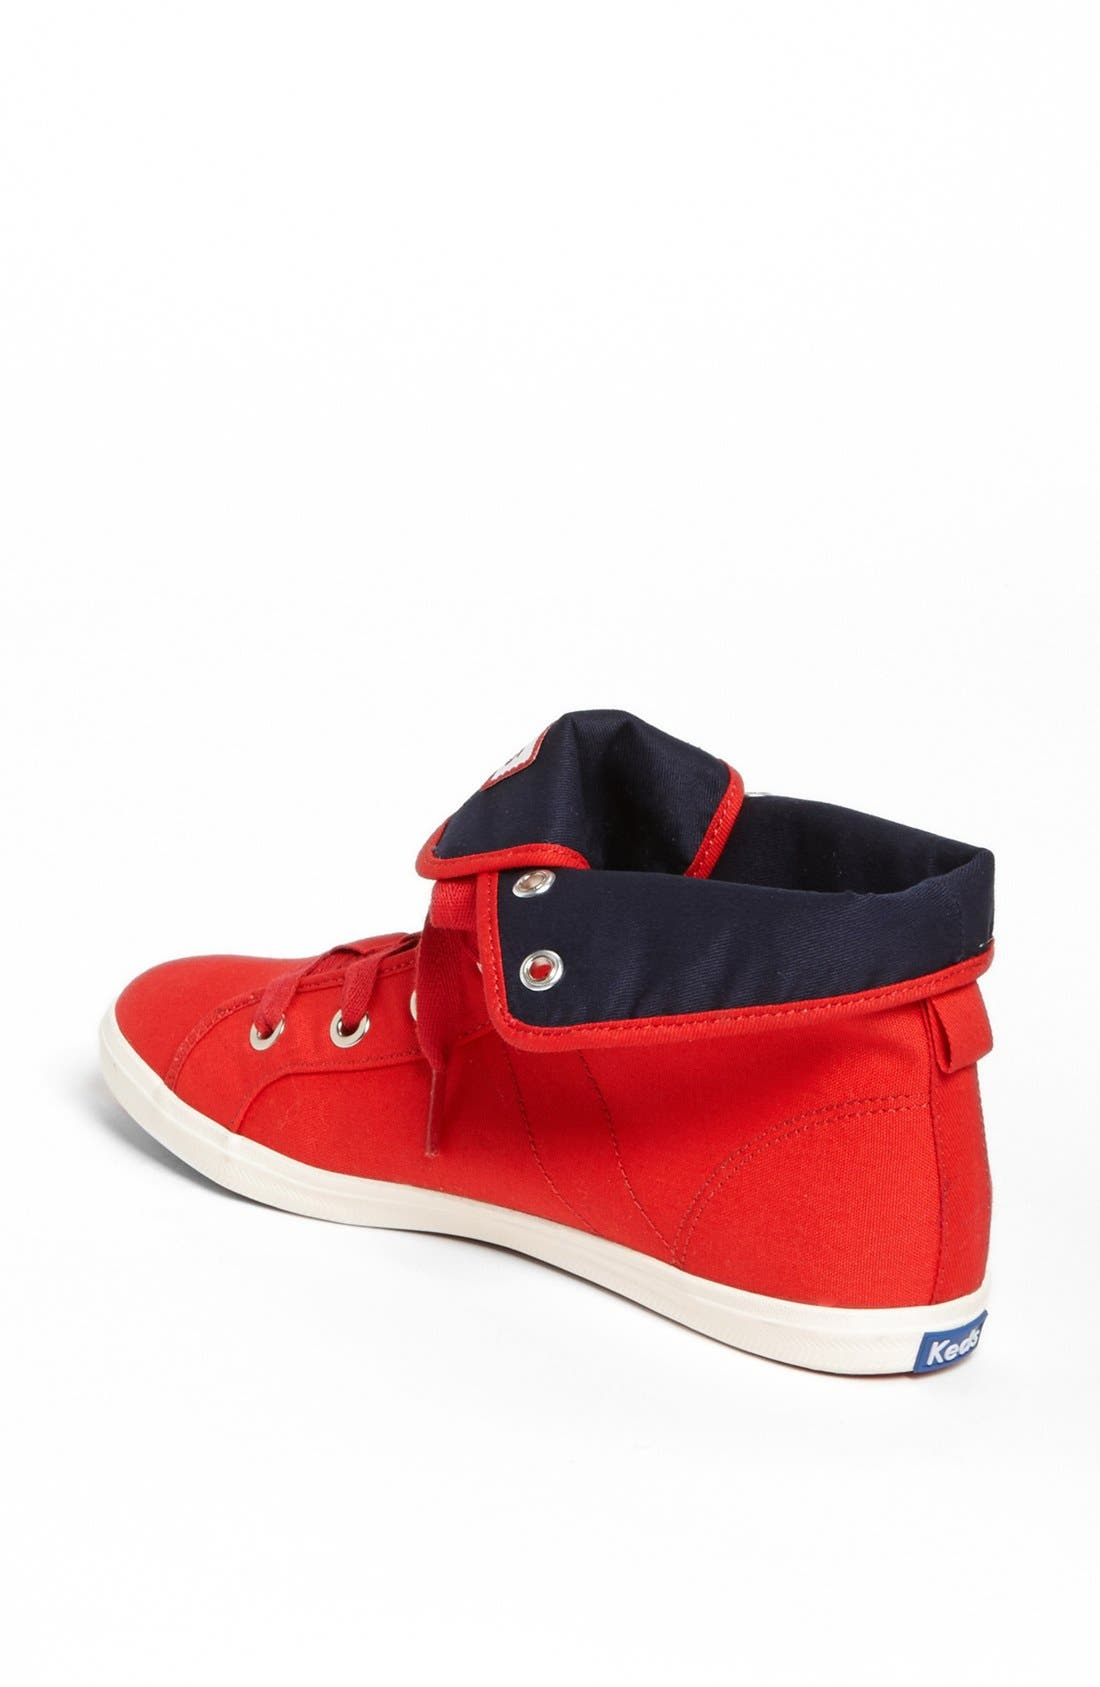 Alternate Image 2  - Keds® 'Rookie - Loop-De-Loop' High Top Sneaker (Women)